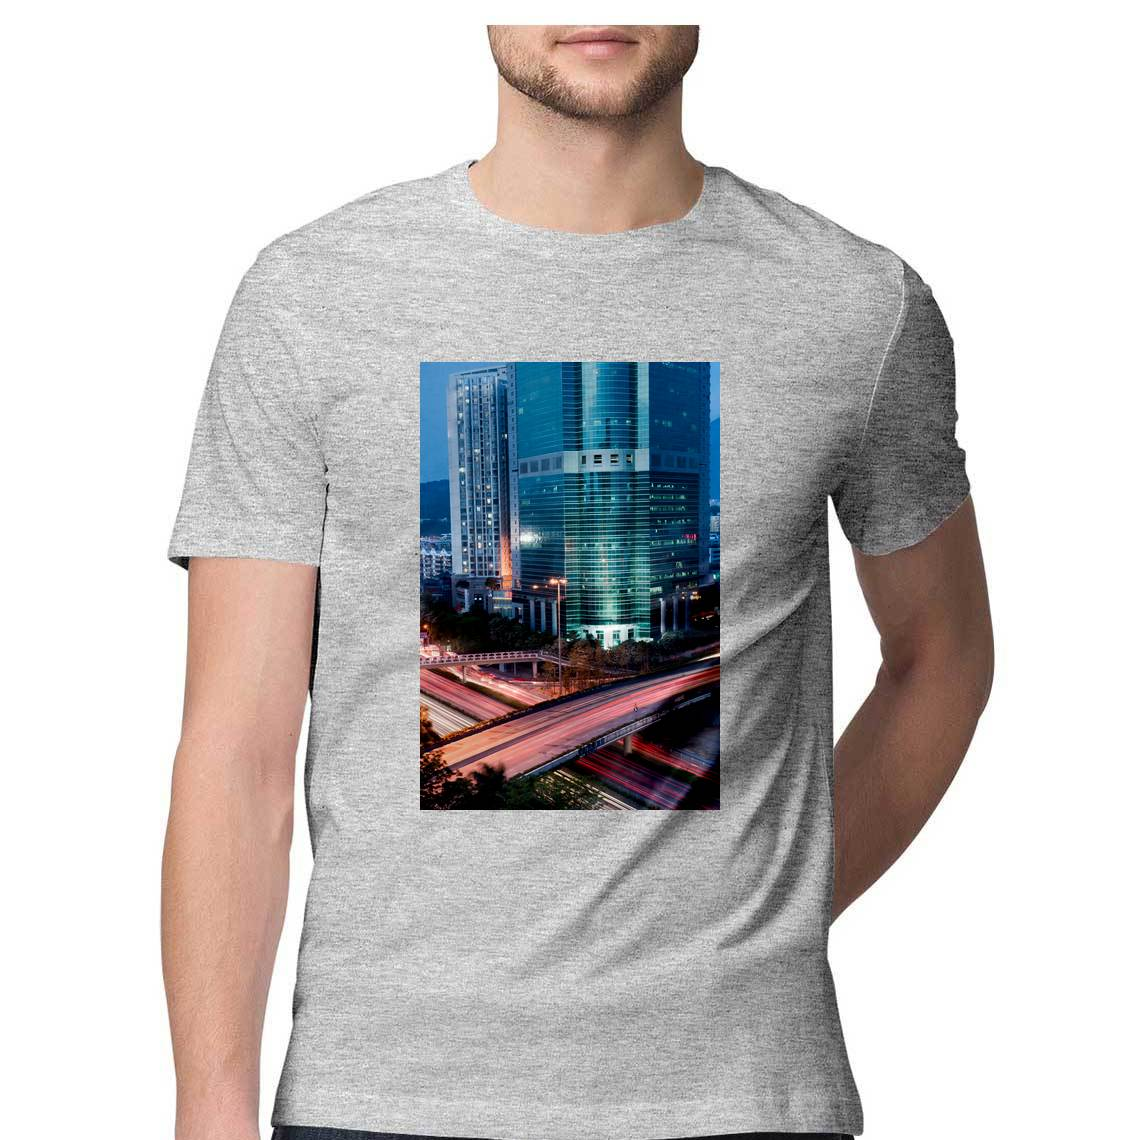 T-shirt round neck city vibes lovers.